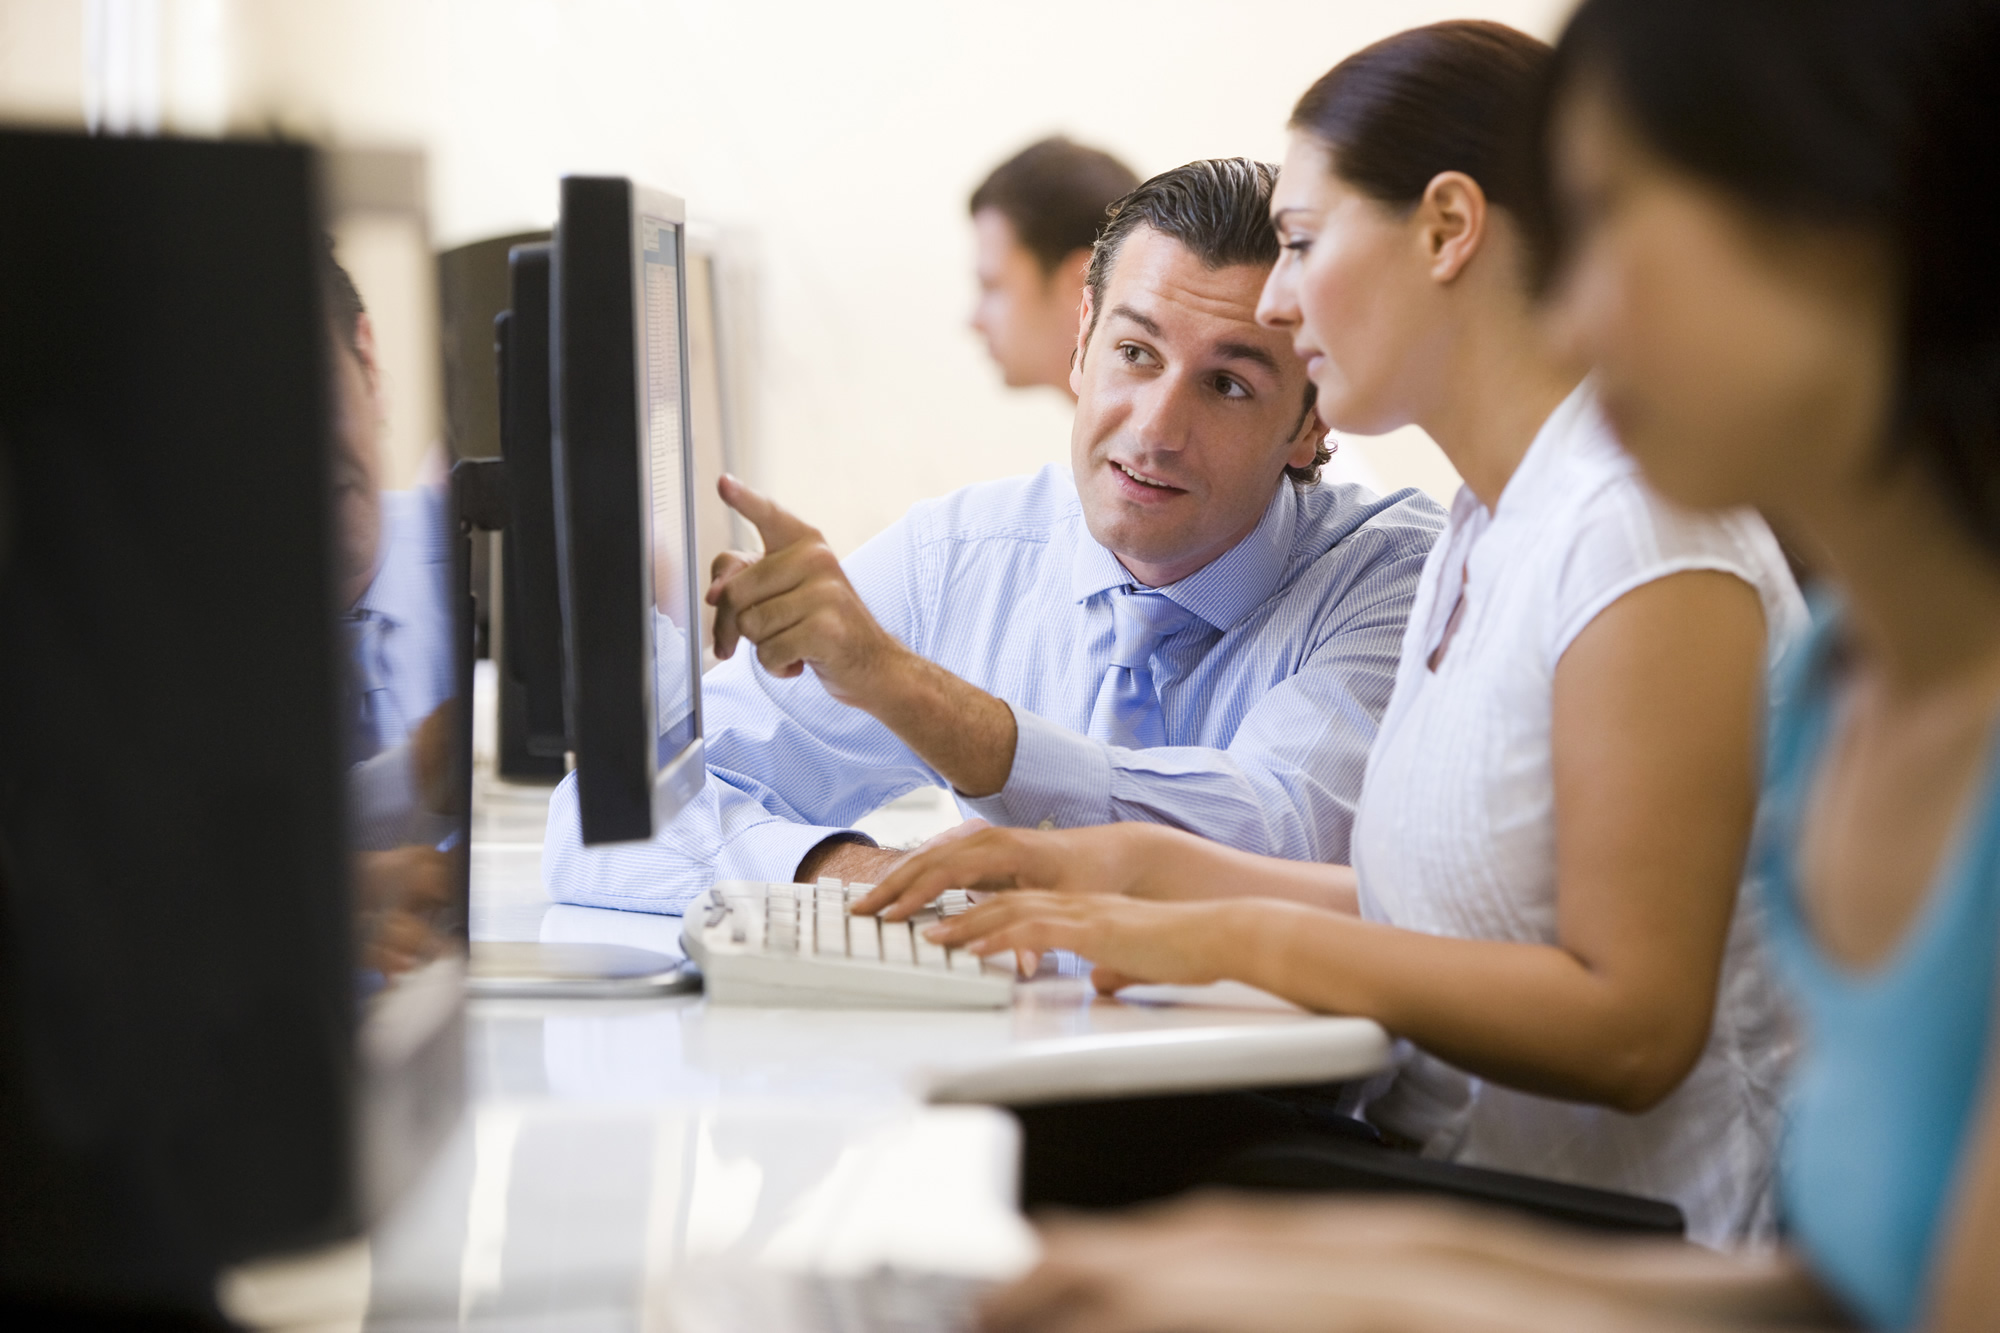 U1_metier_N1_informatique_A2_C_Monkey Business Images_Thinkstock_F_2000x1333.jpg